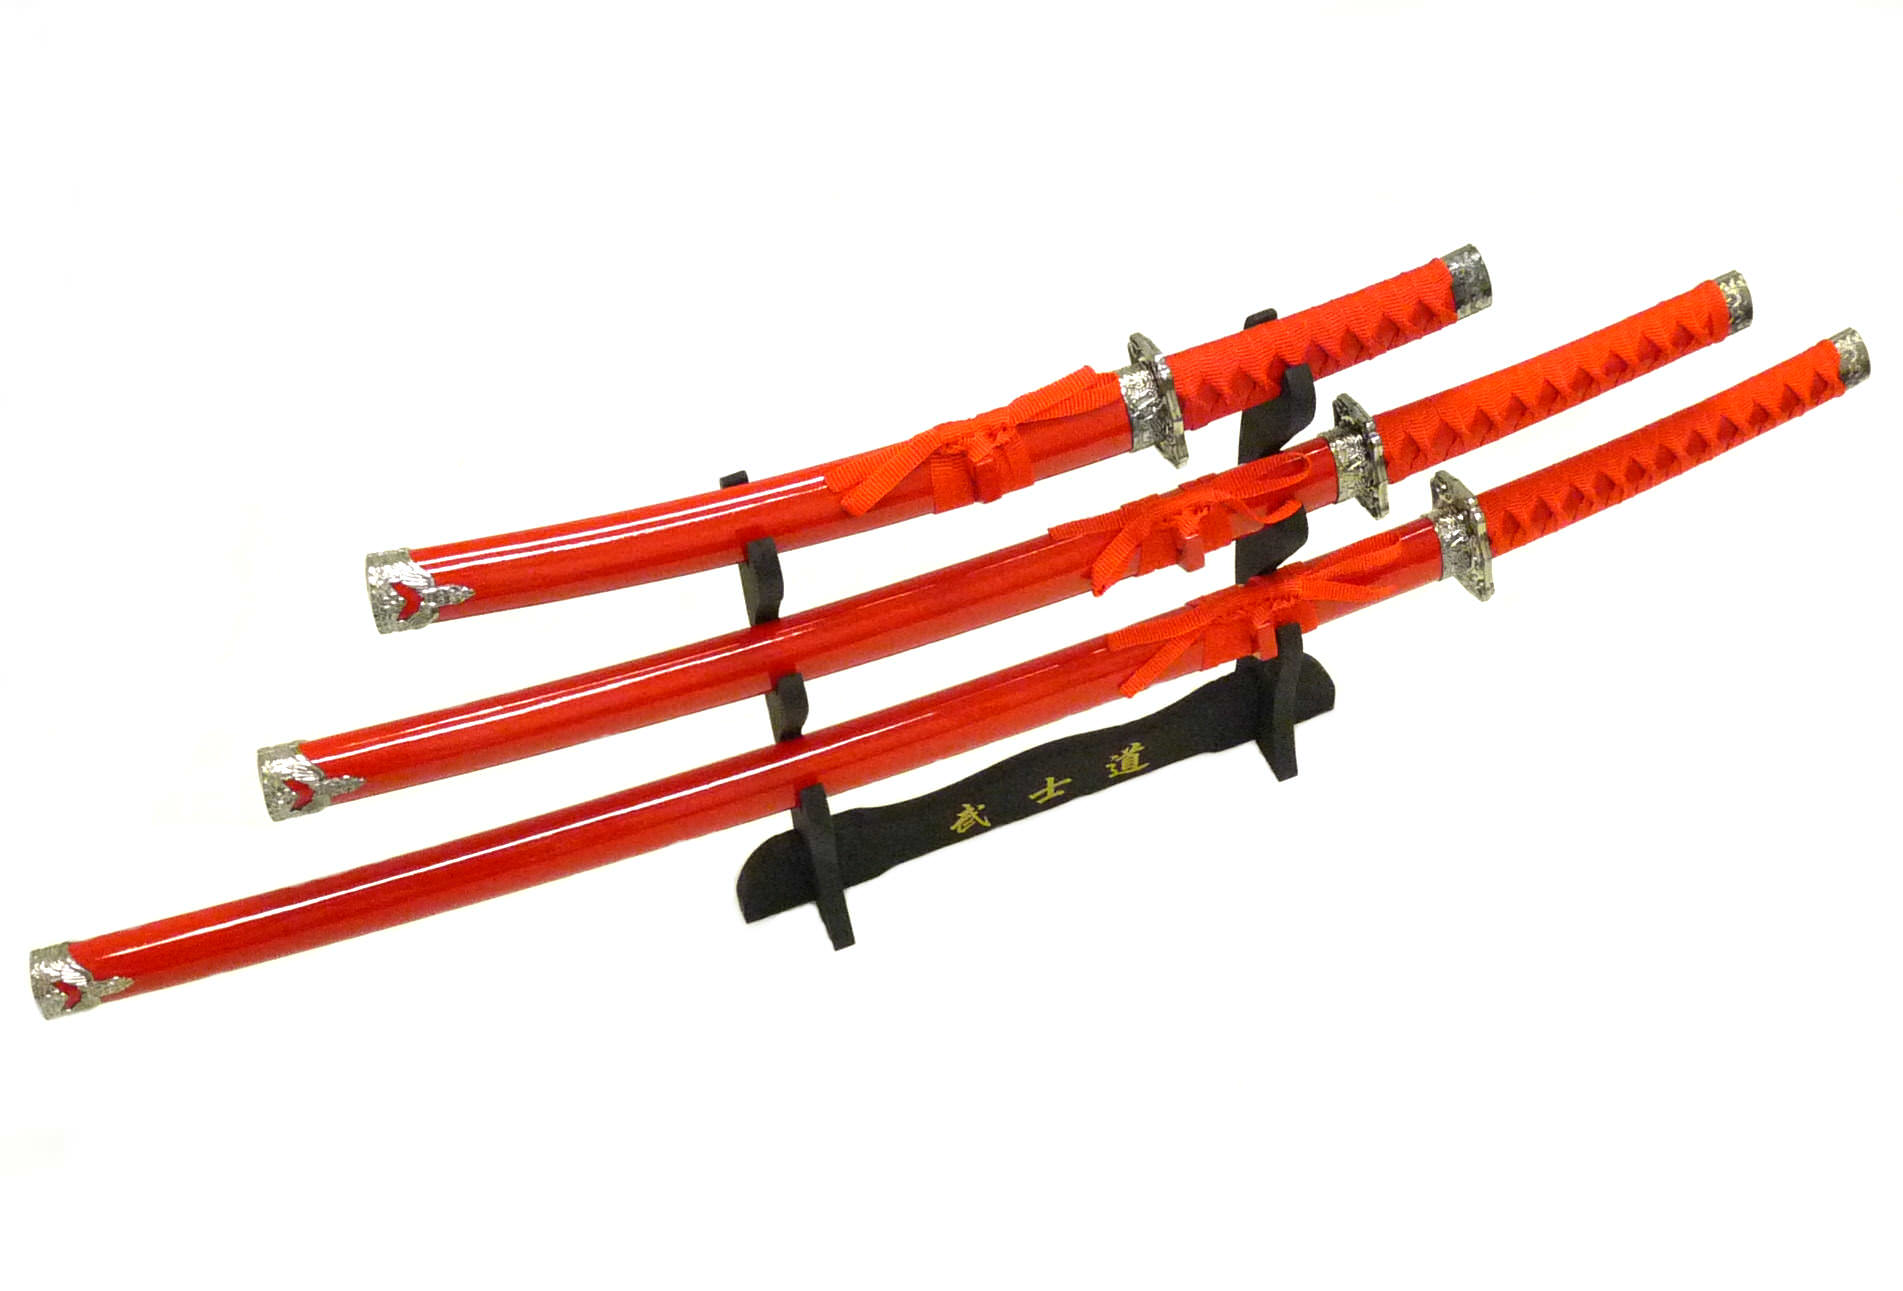 3pc Set Samurai Sword Set C29152-RD4